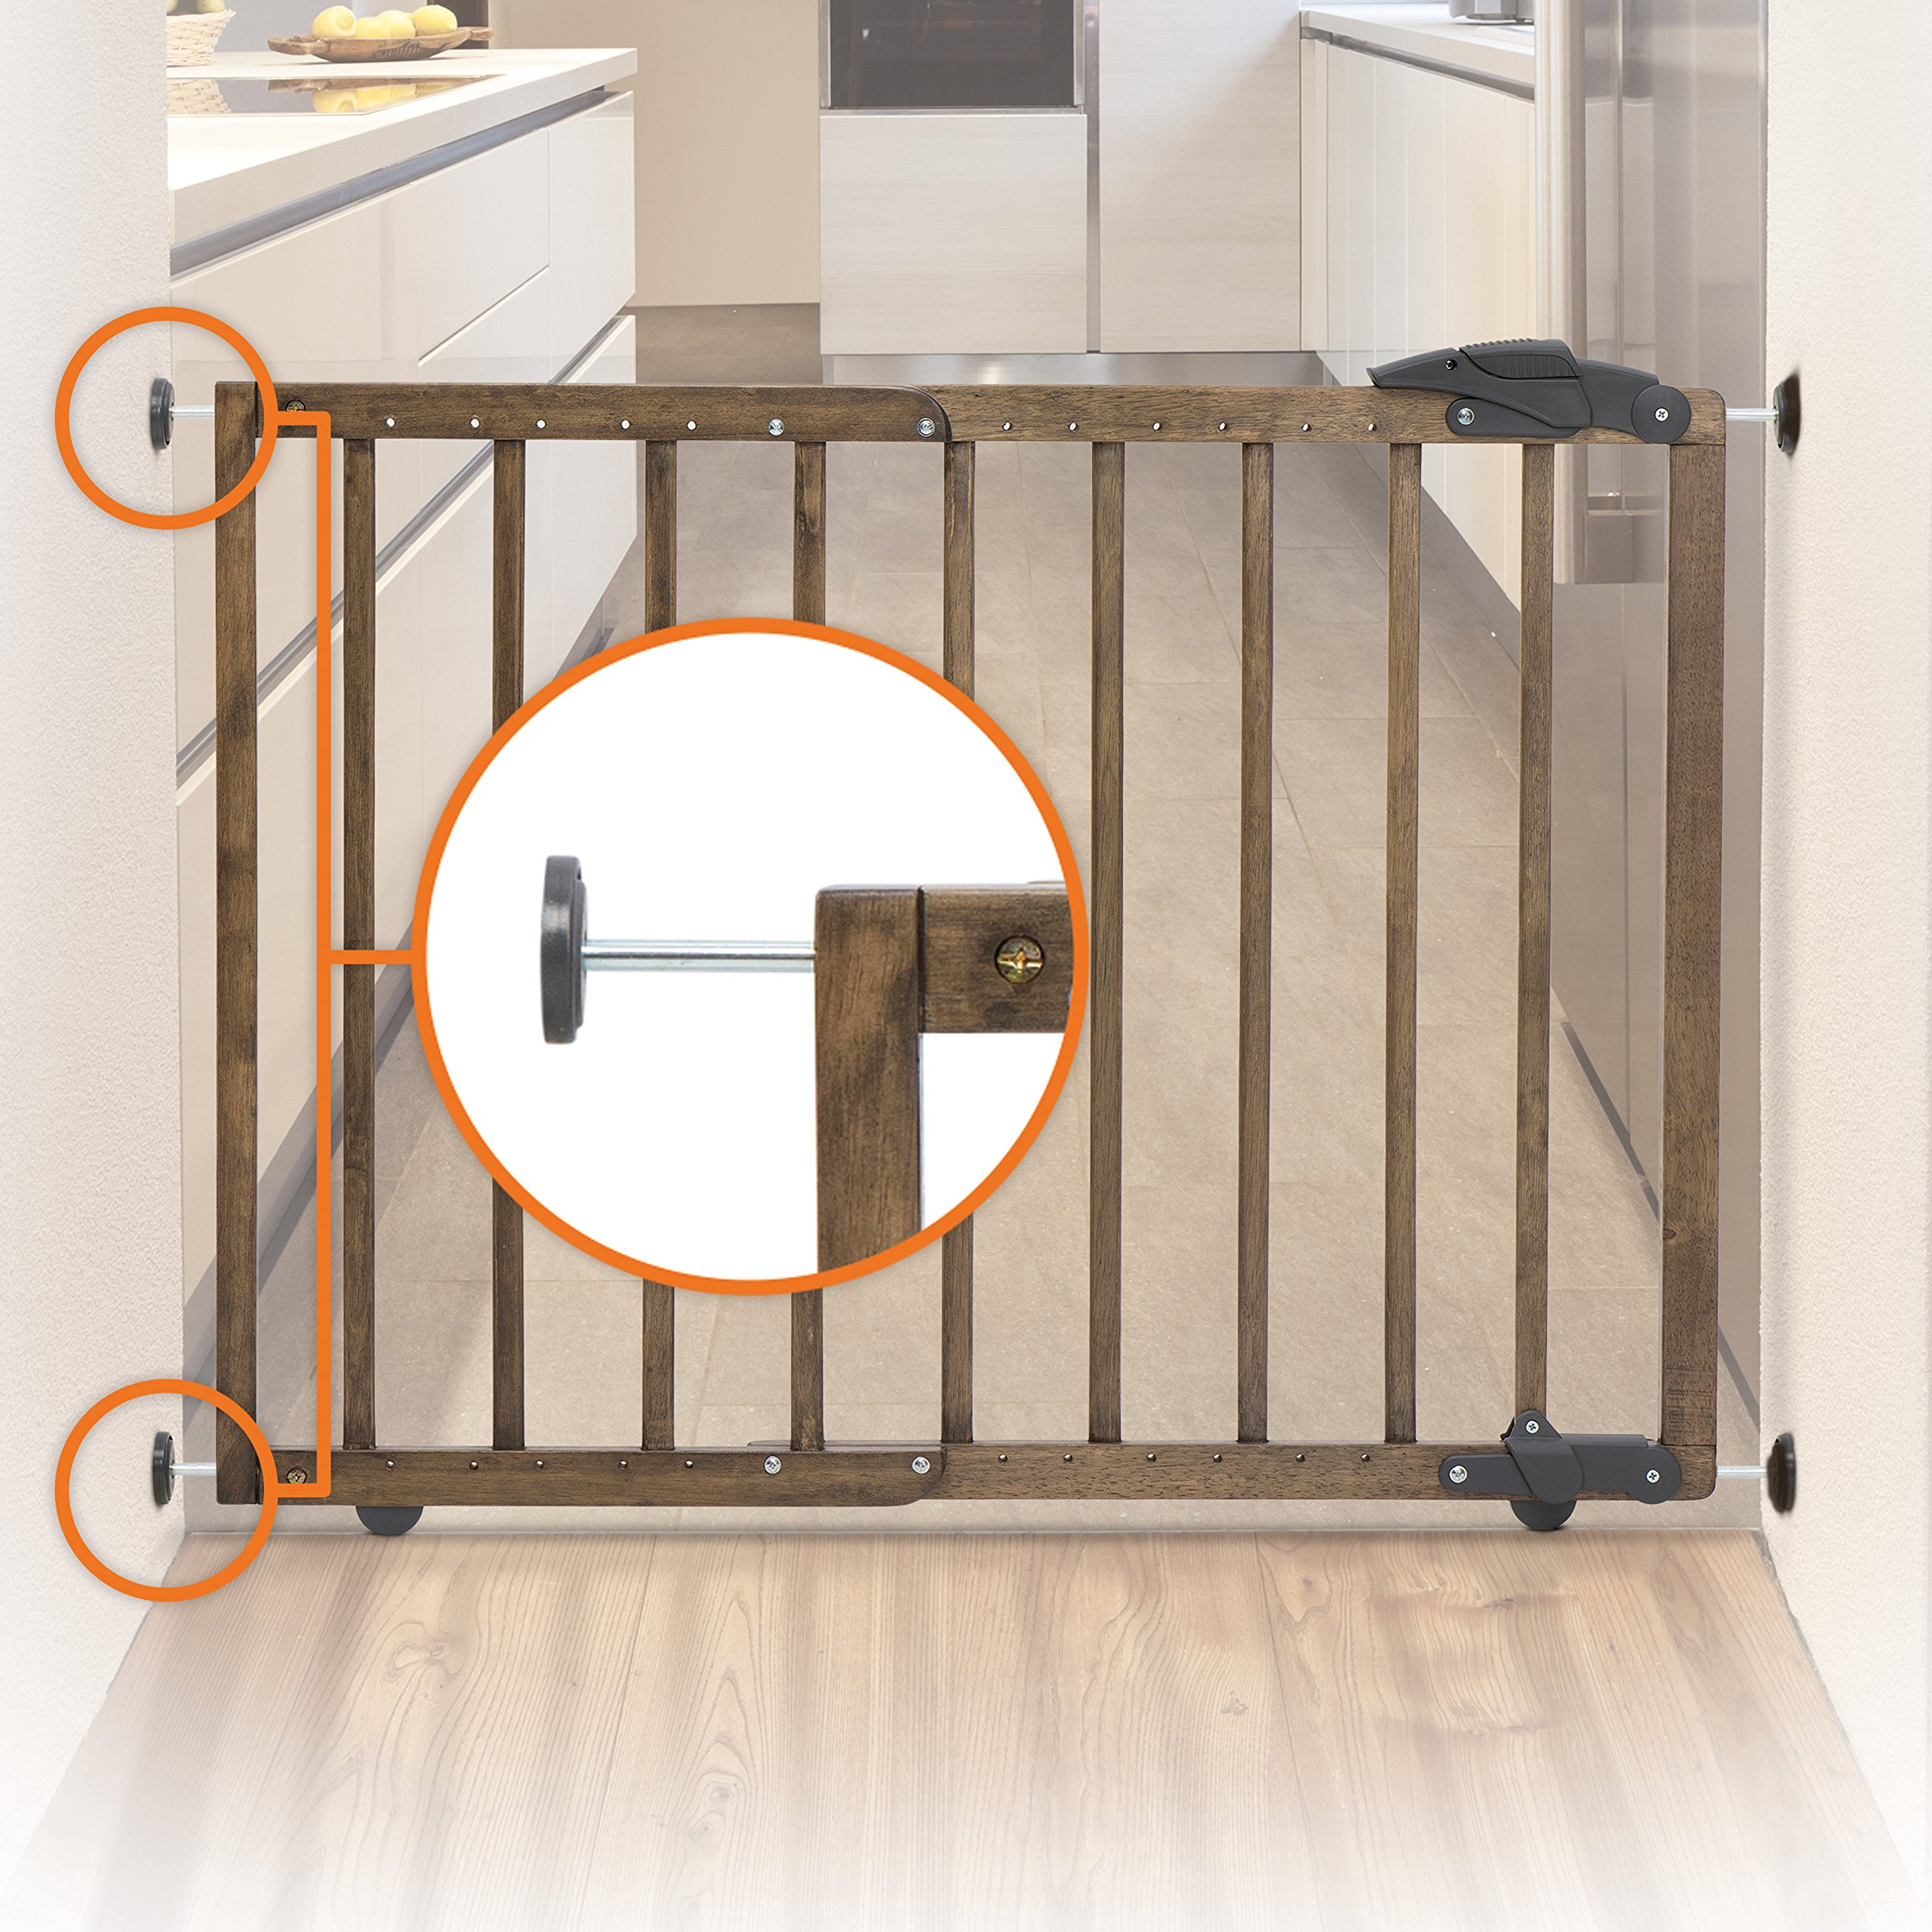 Dreambaby Nottingham 2 in 1 Gro-Gate by Dreambaby (Image #6)